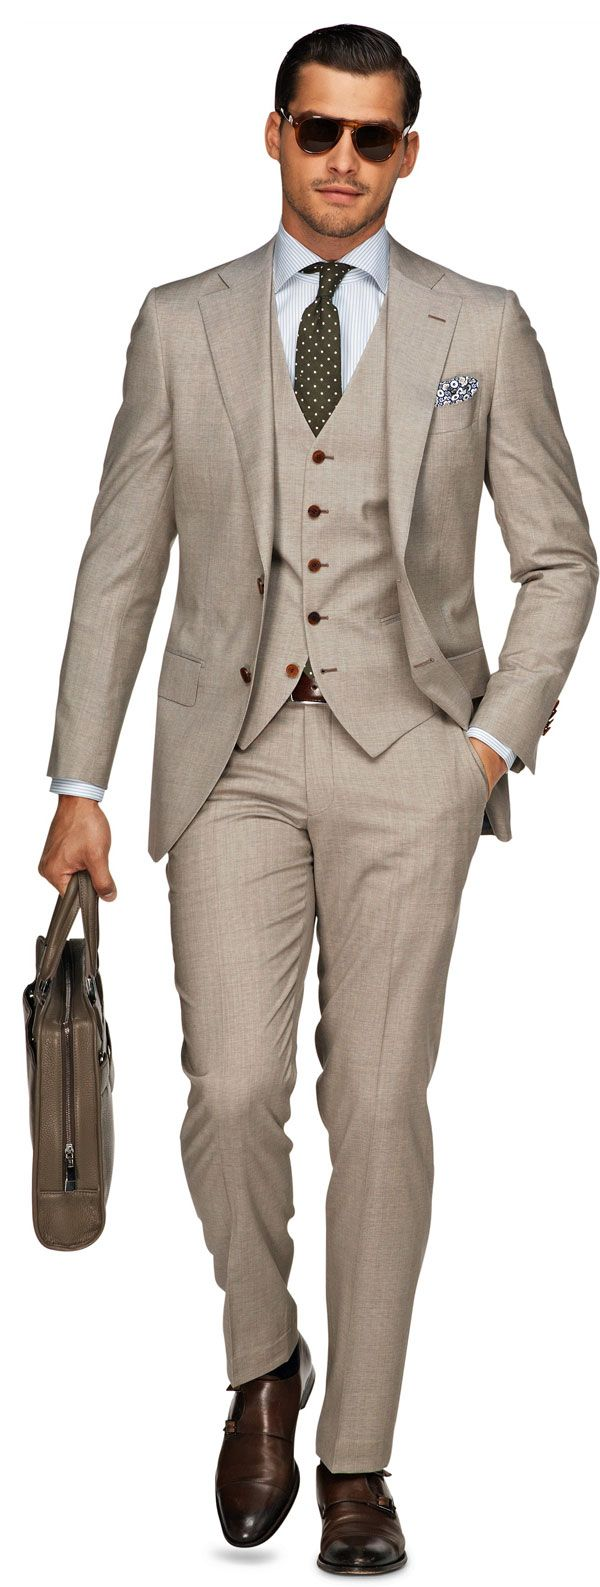 Suit Supply-Lazio-Light-Brown | Men's Fashion | Menswear | Men's Outfit for Business | Stylish and Sophisticated | Spring/Summer Style | Moda Masculina para Primavera/Verano | Shop at designerclothingfans.com